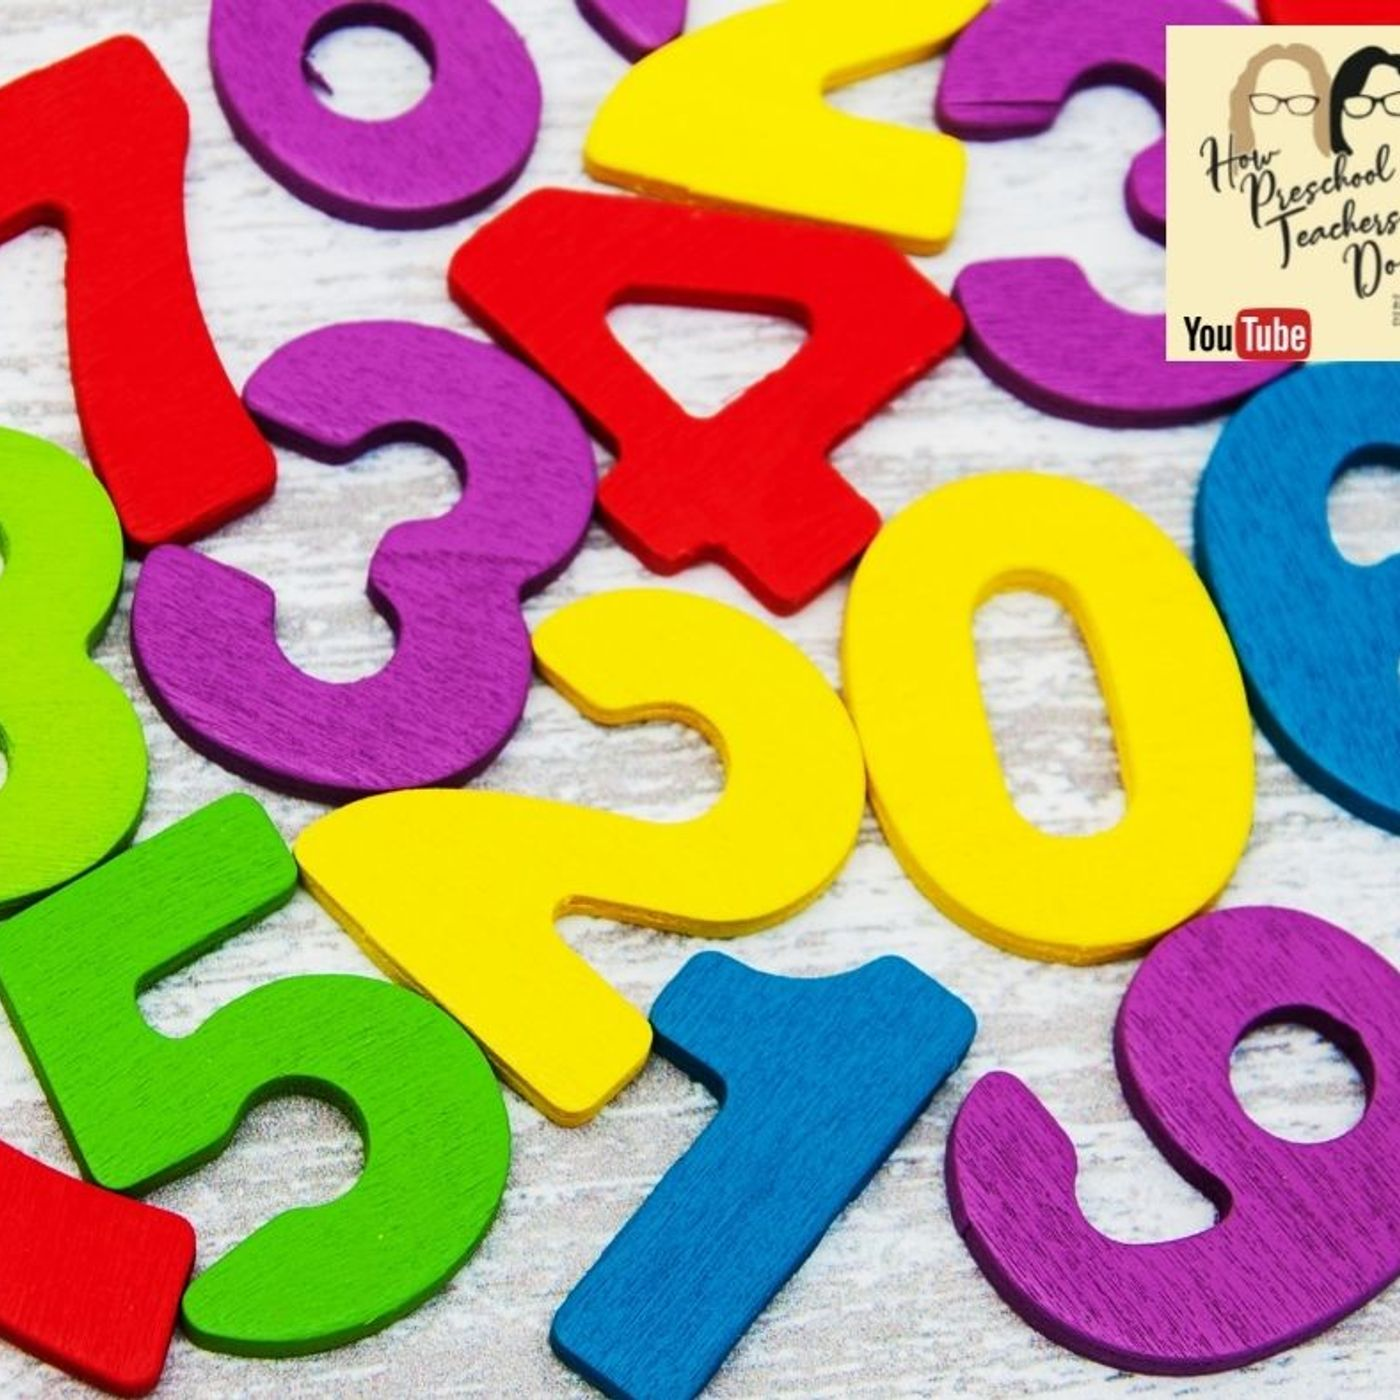 130: Math Talk: Teach Numbers in Real Ways (Another Lost Episode)